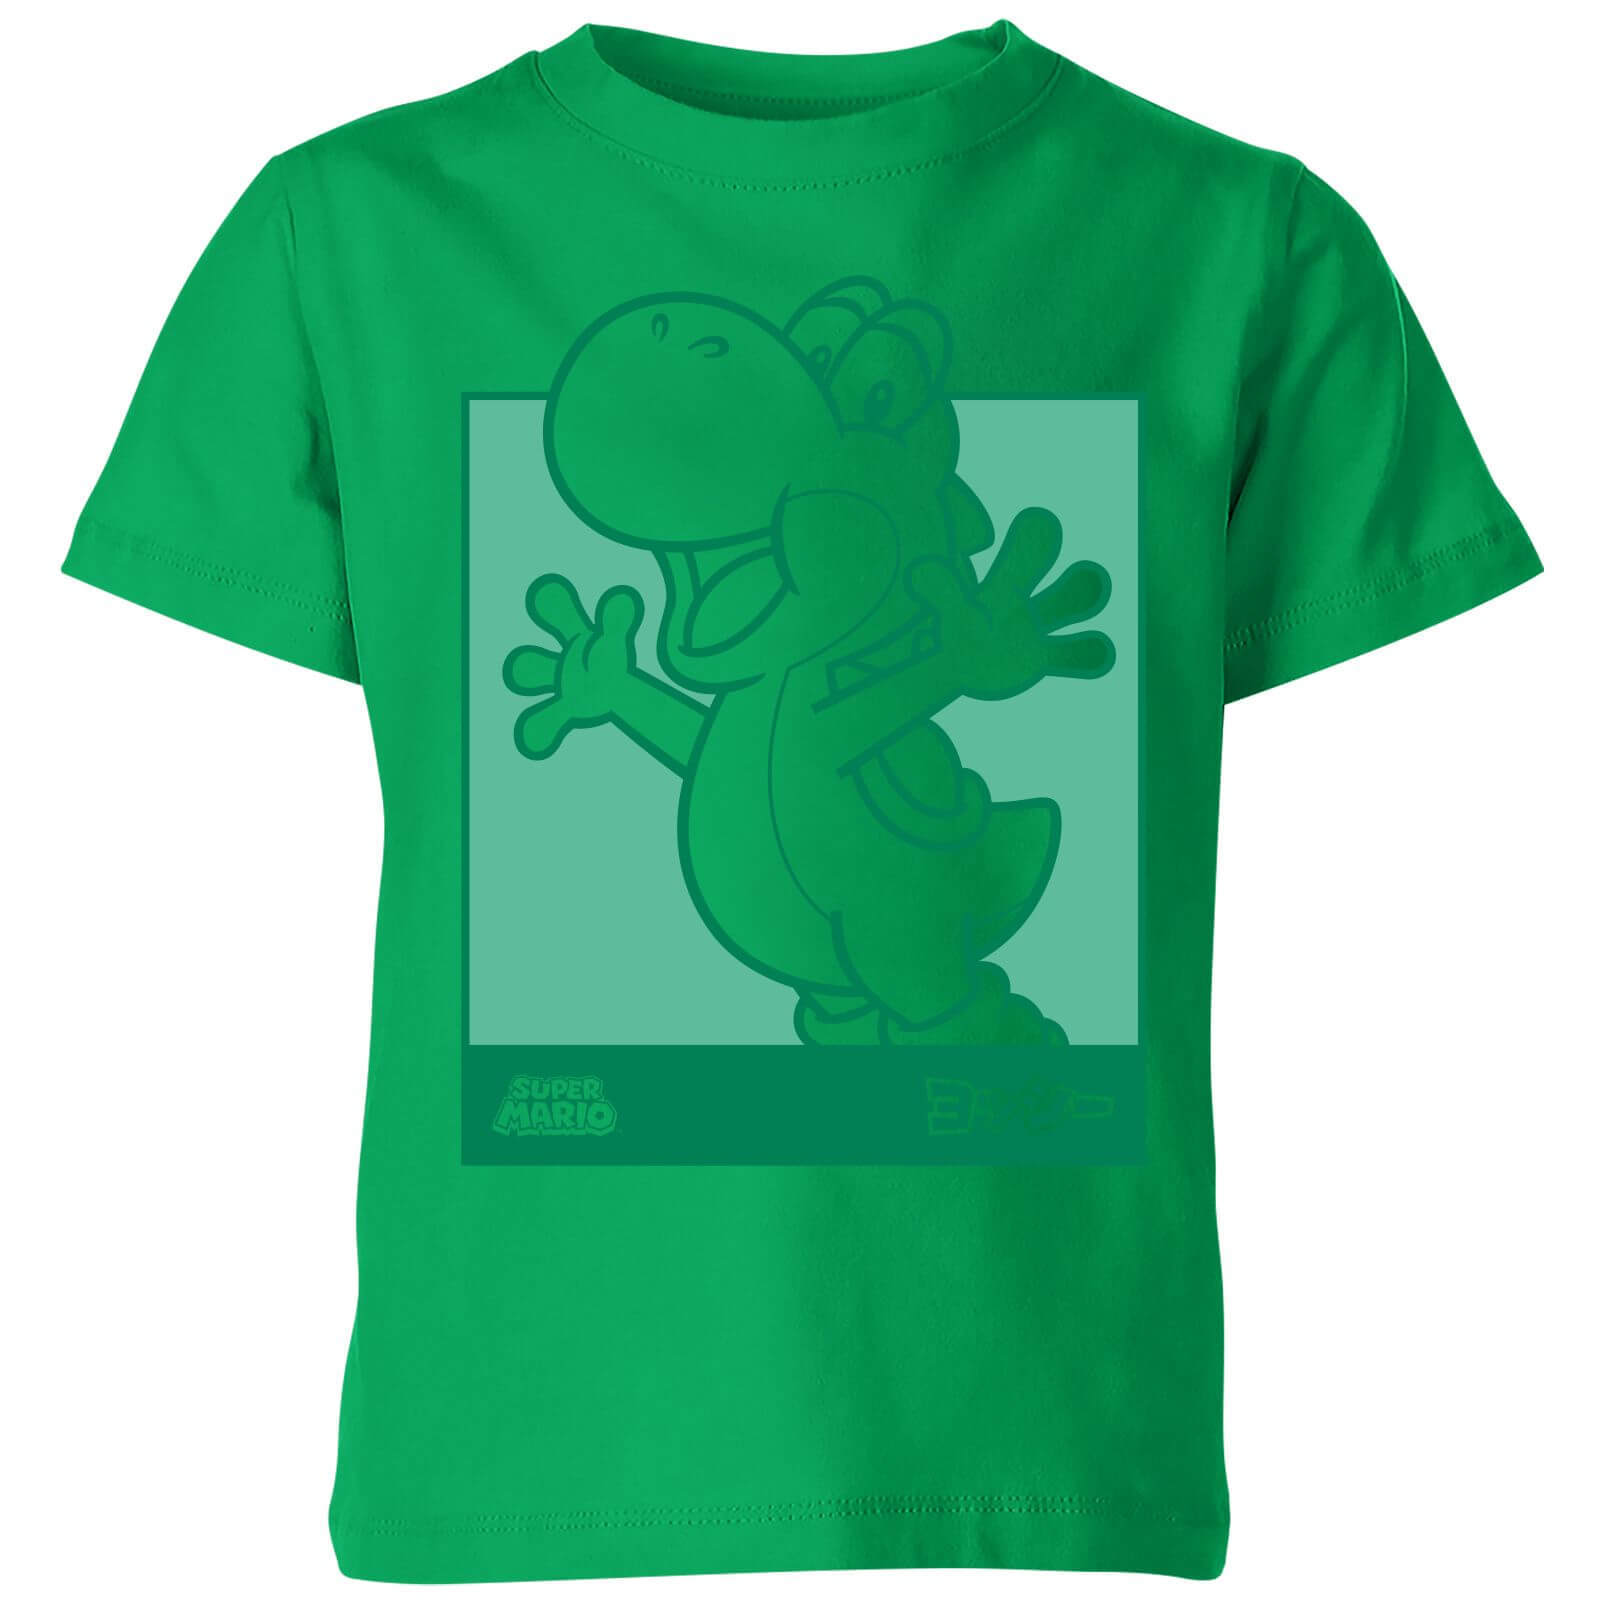 Nintendo Super Mario Yoshi Kanji Line Art Kids' T-Shirt - Kelly Green - 11-12 Years image